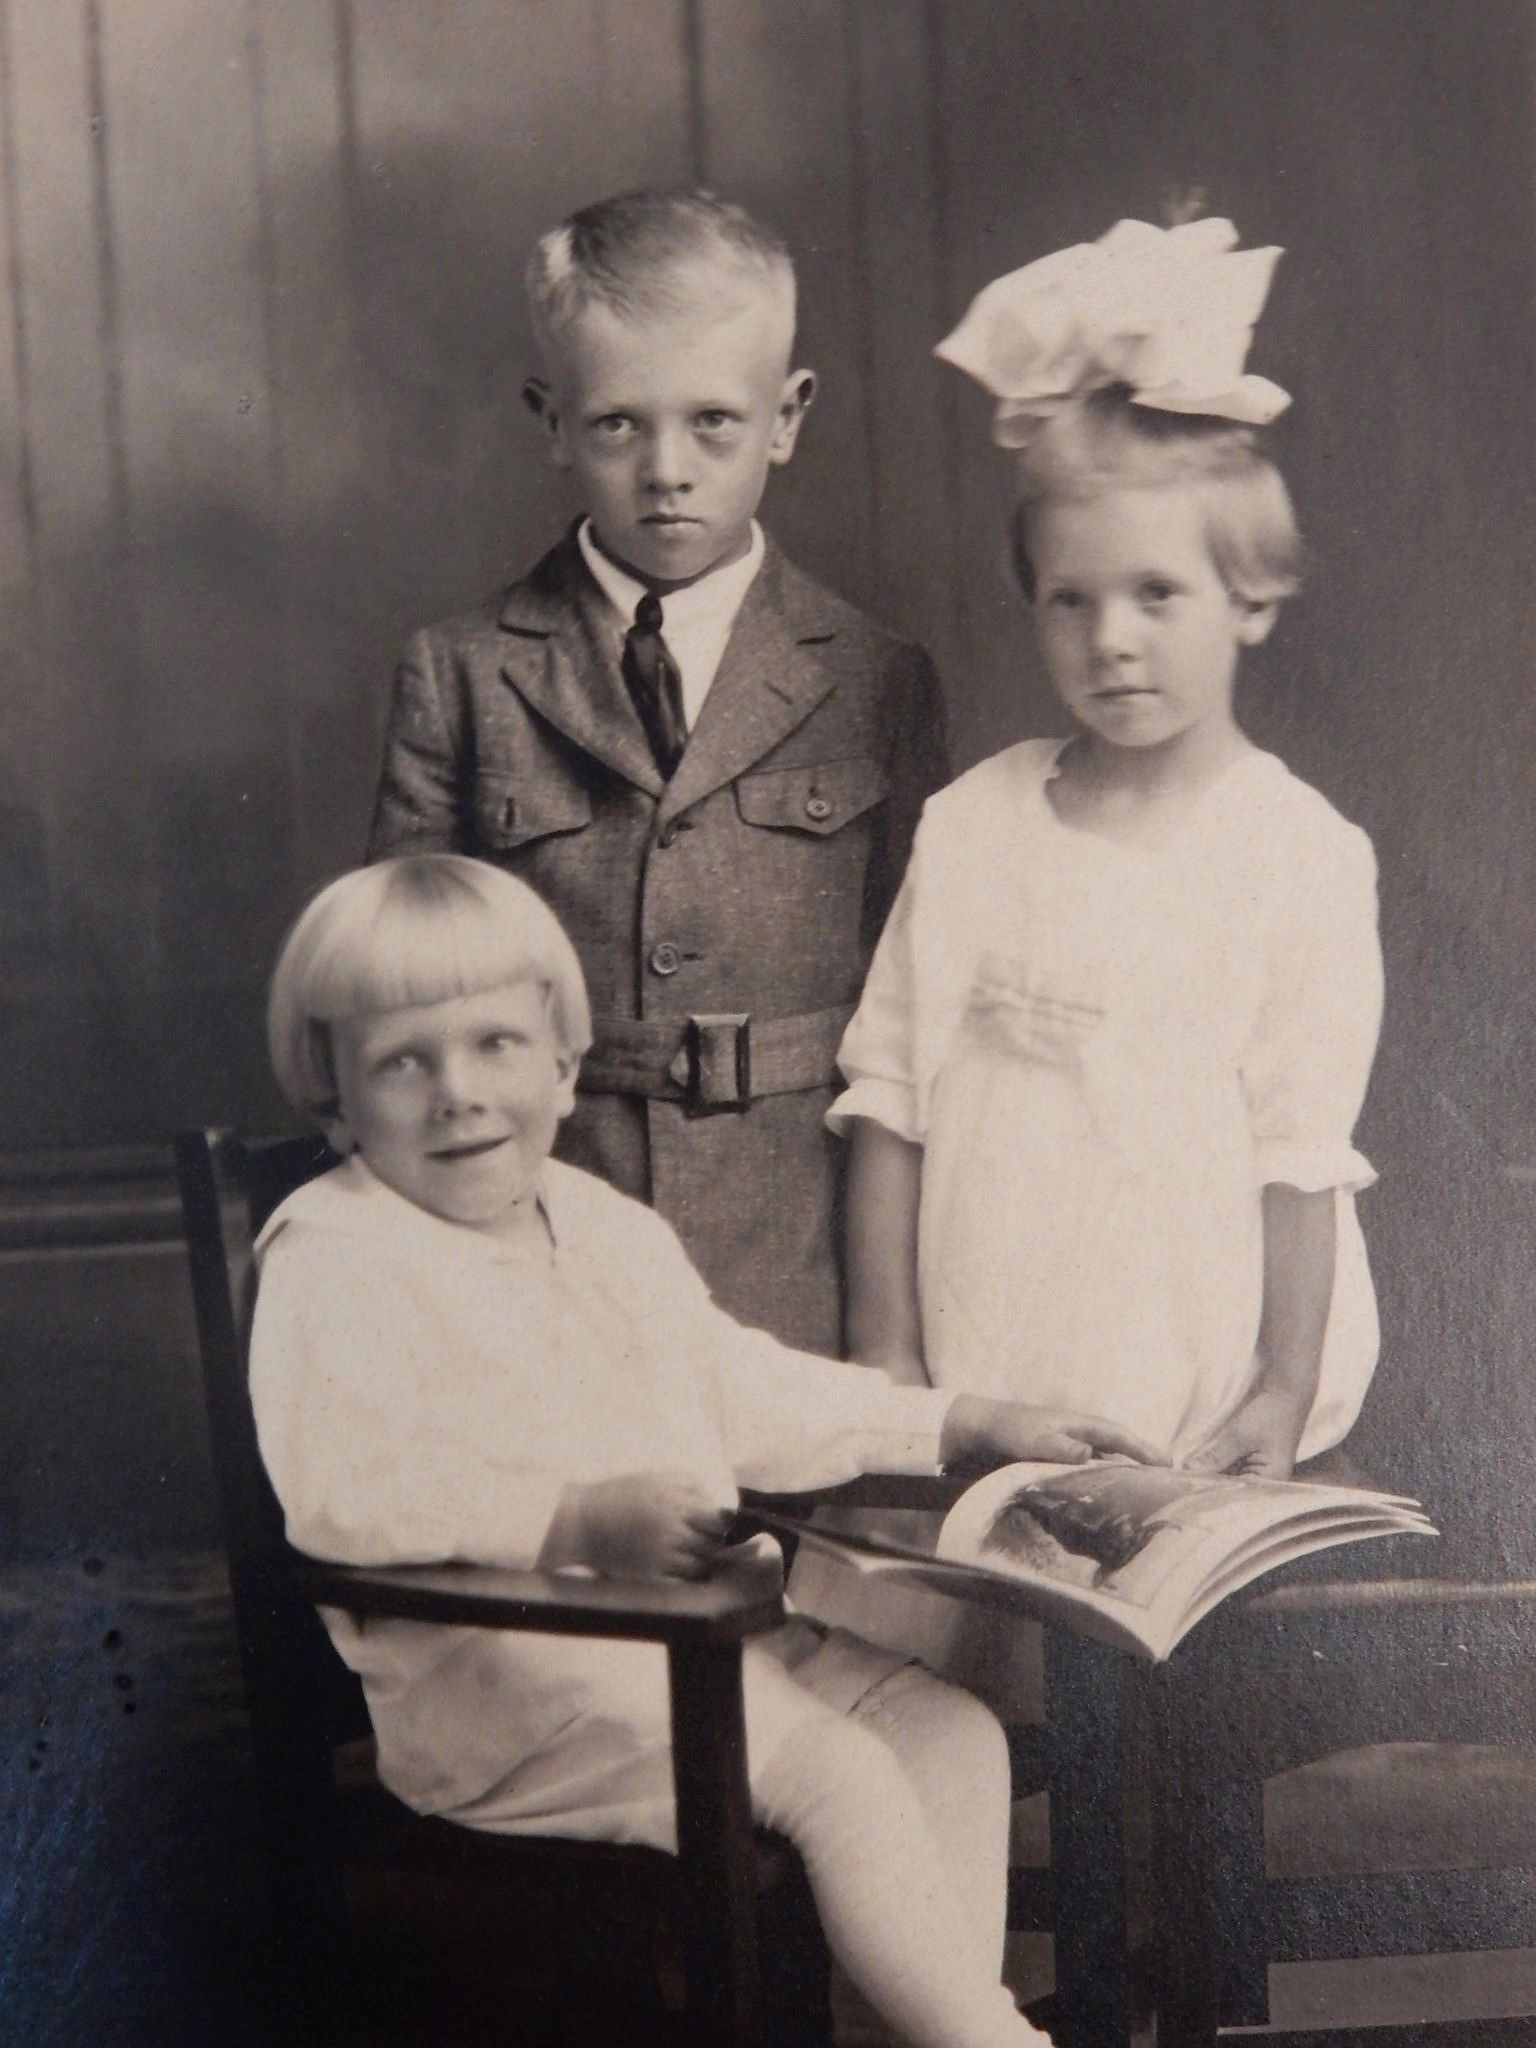 Gordon Ketchpaw as a boy, in the middle